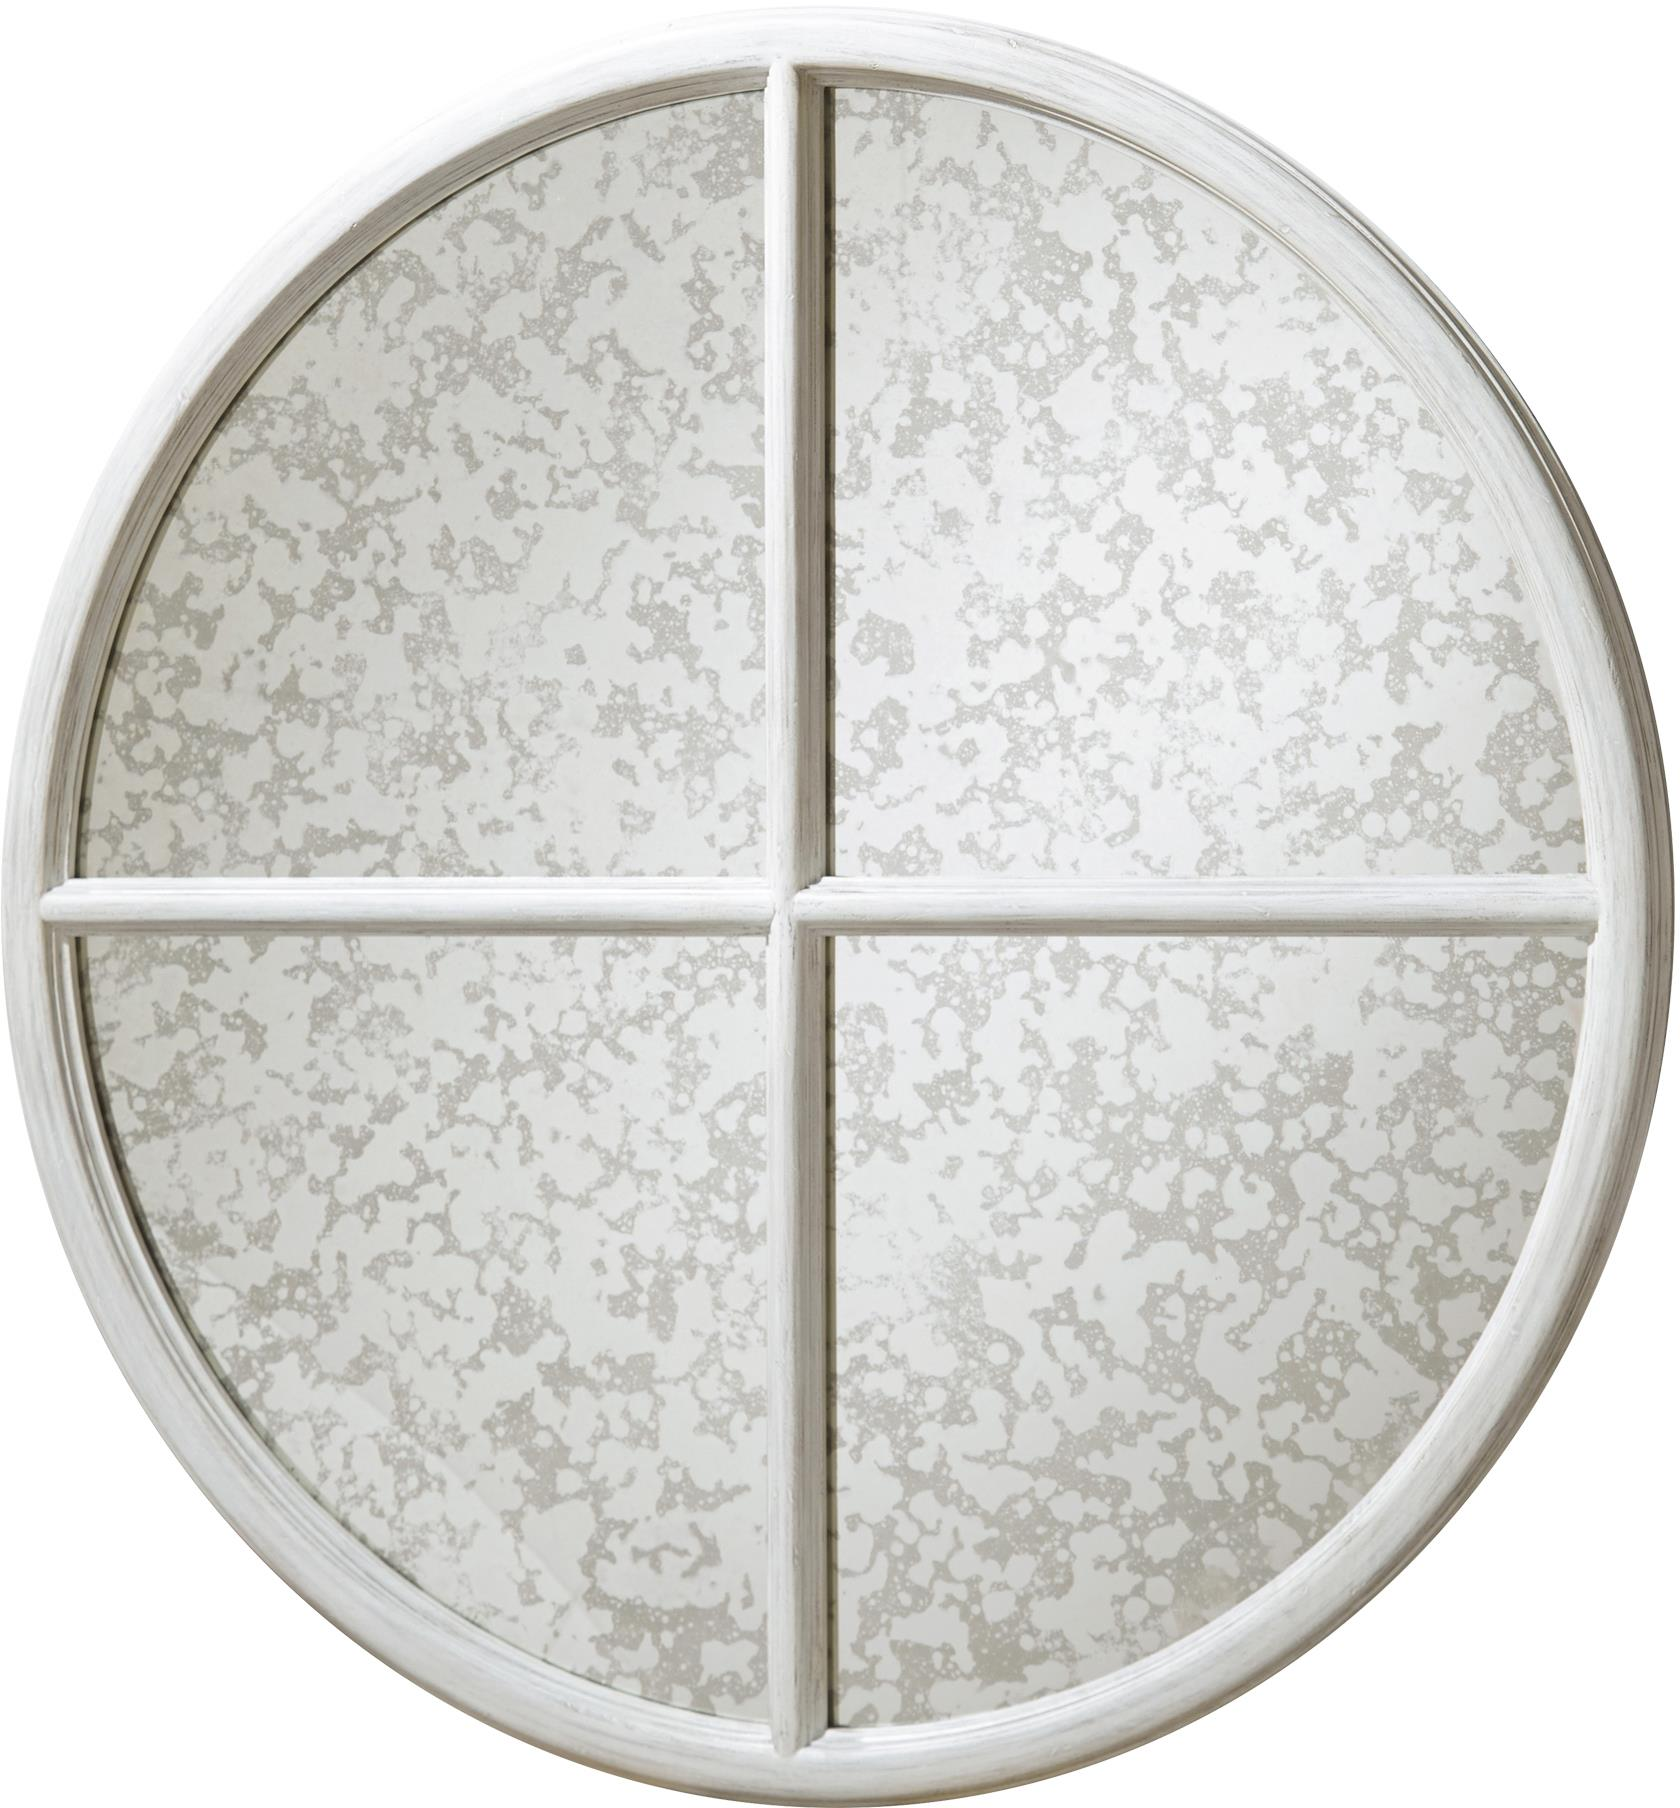 Paula Deen by Universal Dogwood Round Mirror - Item Number: 59709M